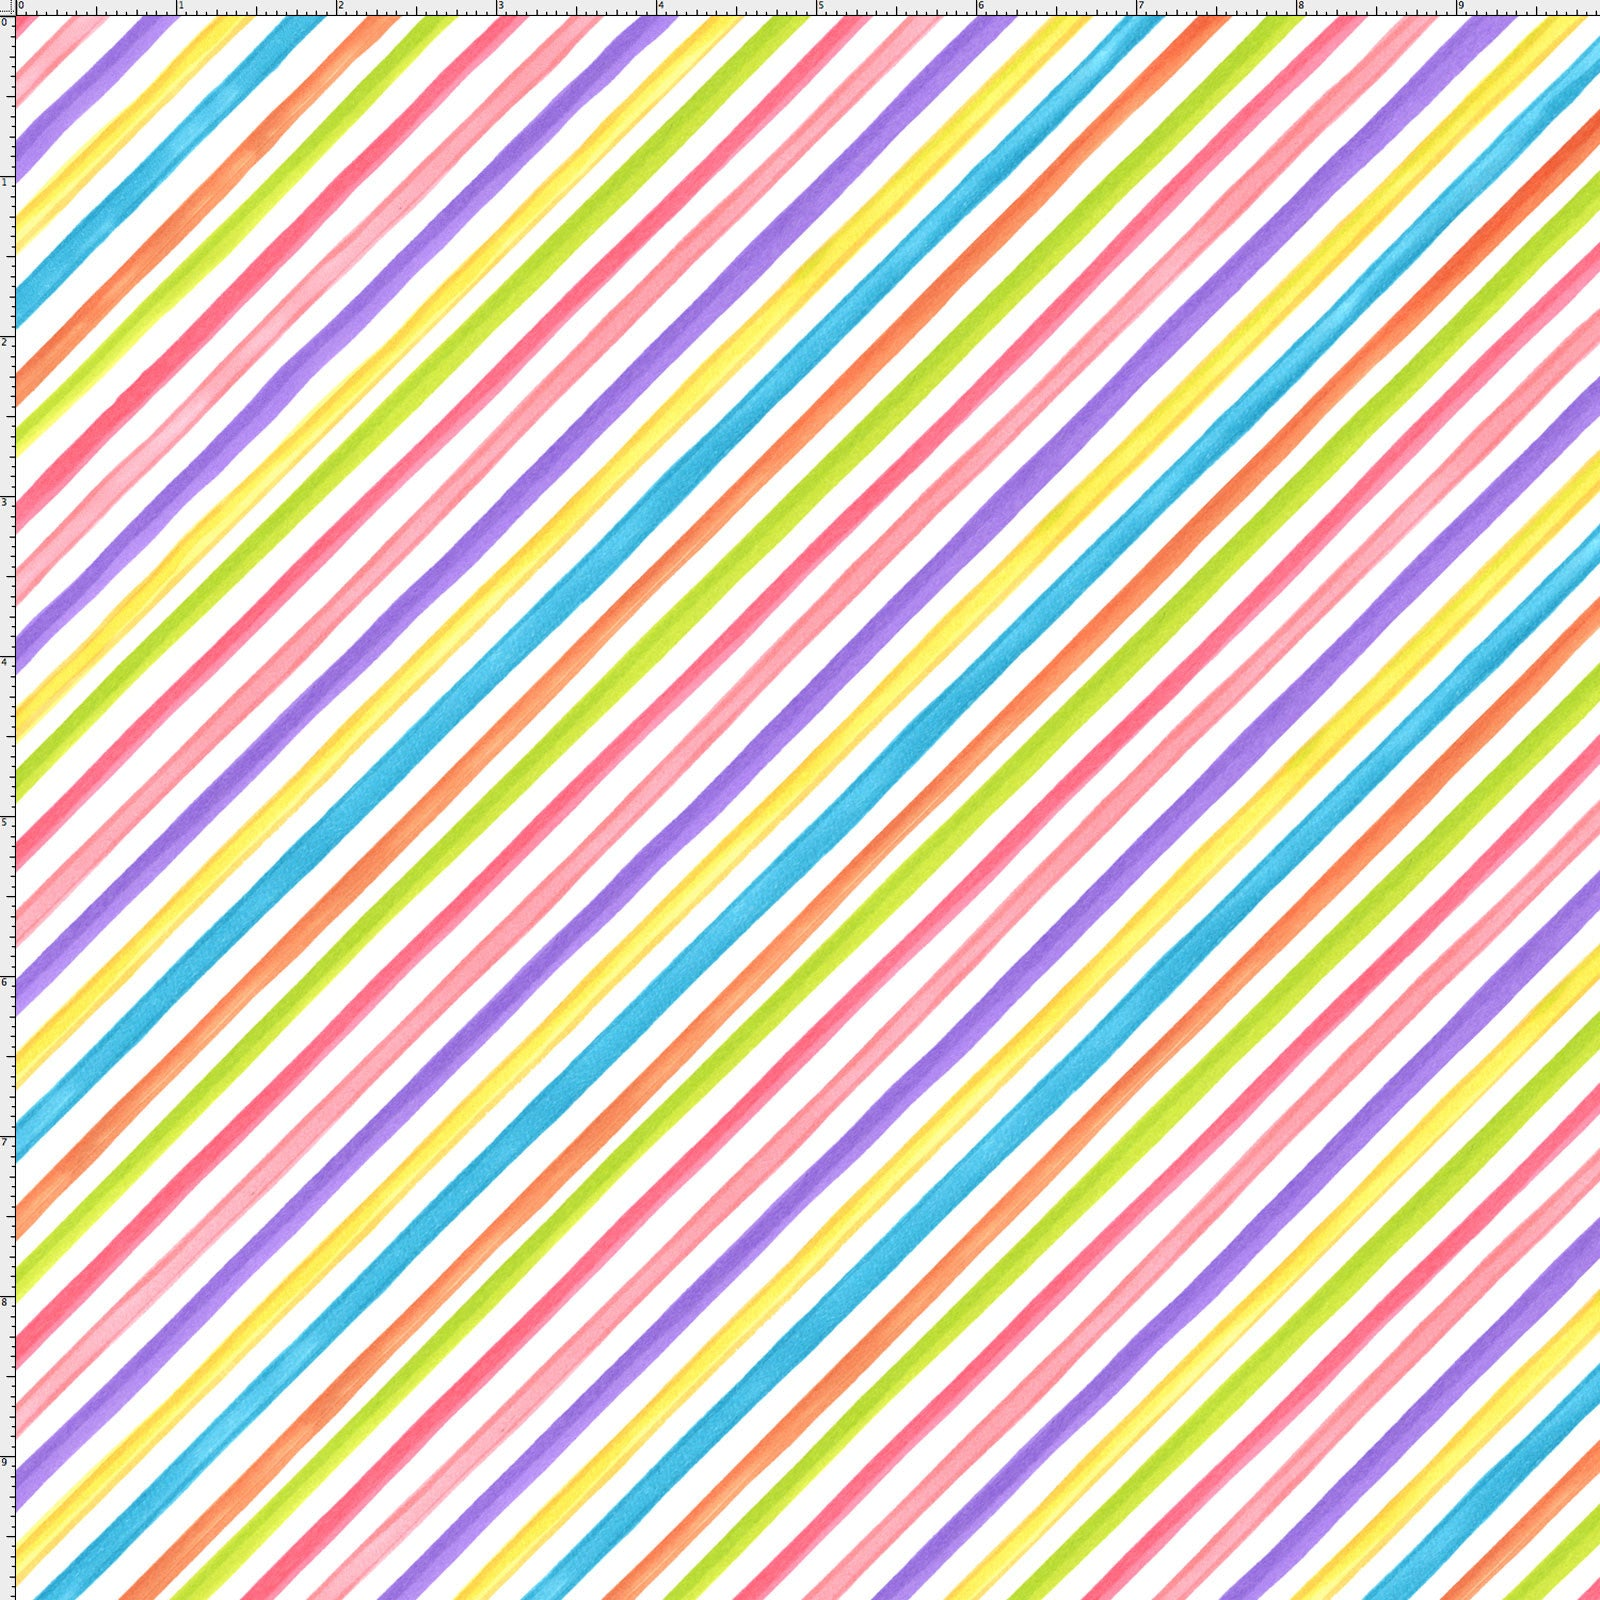 Bias Stripe White Fabric